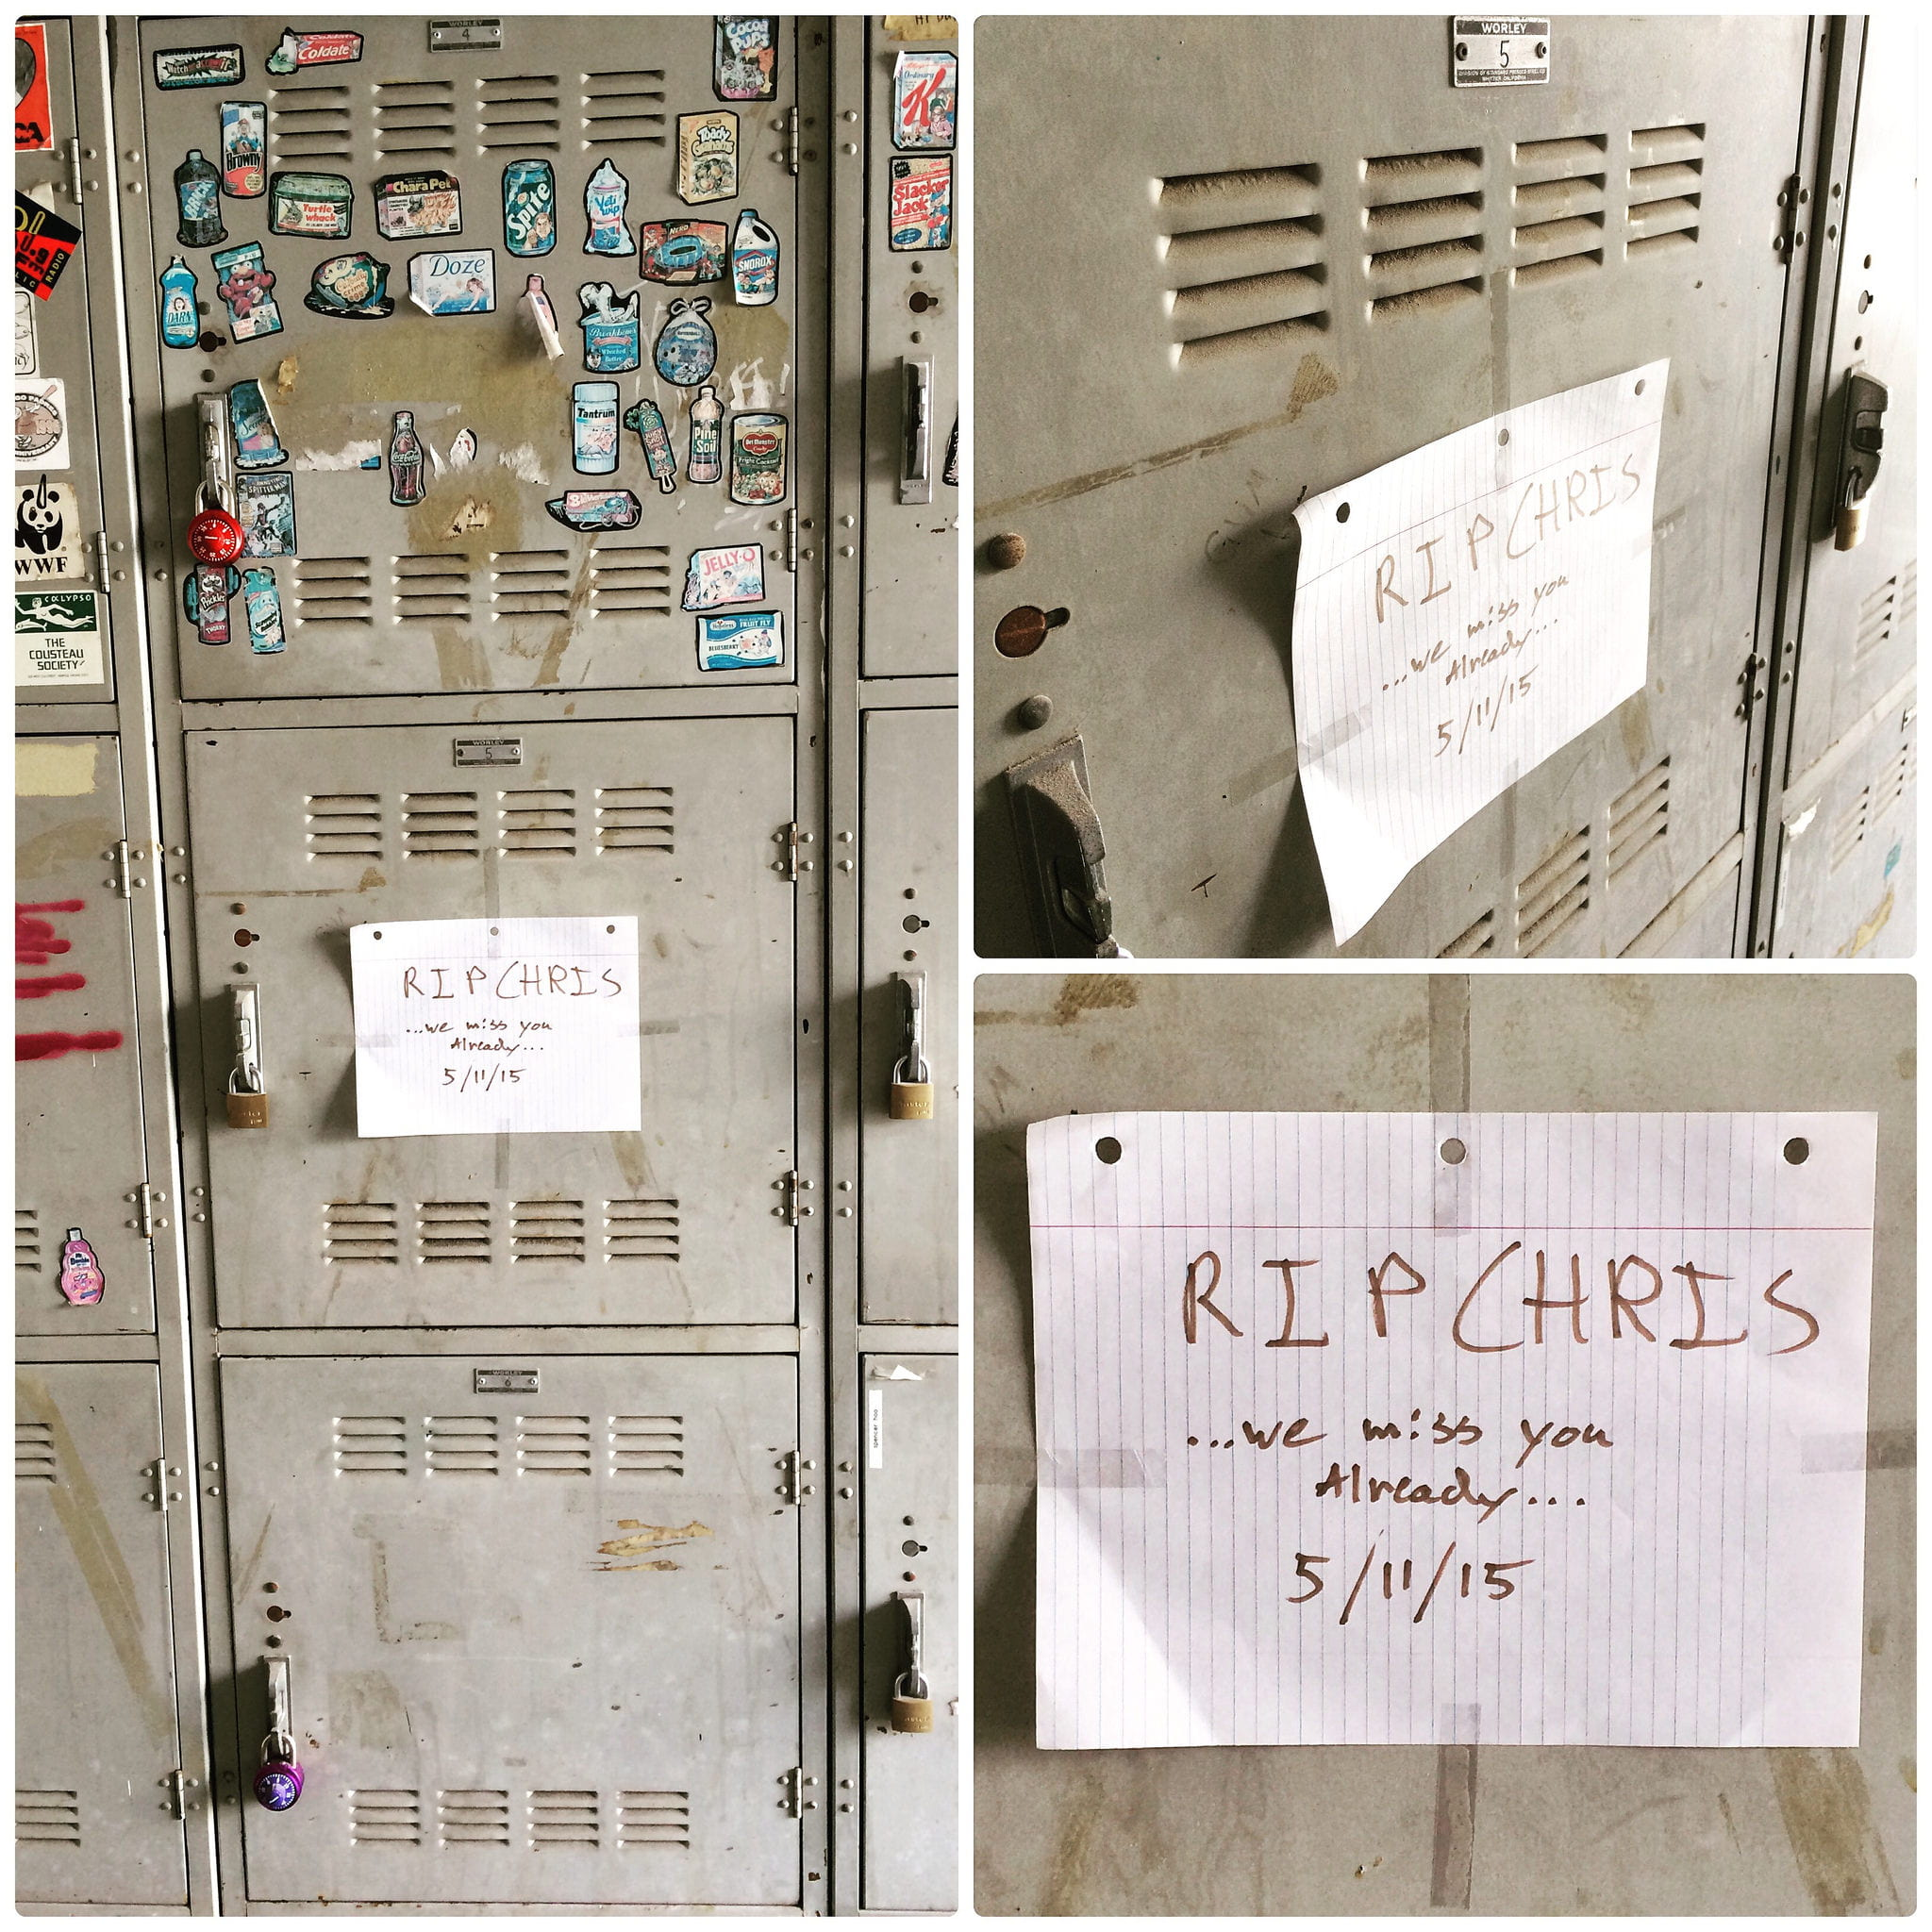 The locker in which Chris Burden confined himself as part of his master's thesis, bears a tribute from current students who are inspired by the artist's commitment to pushing the boundaries